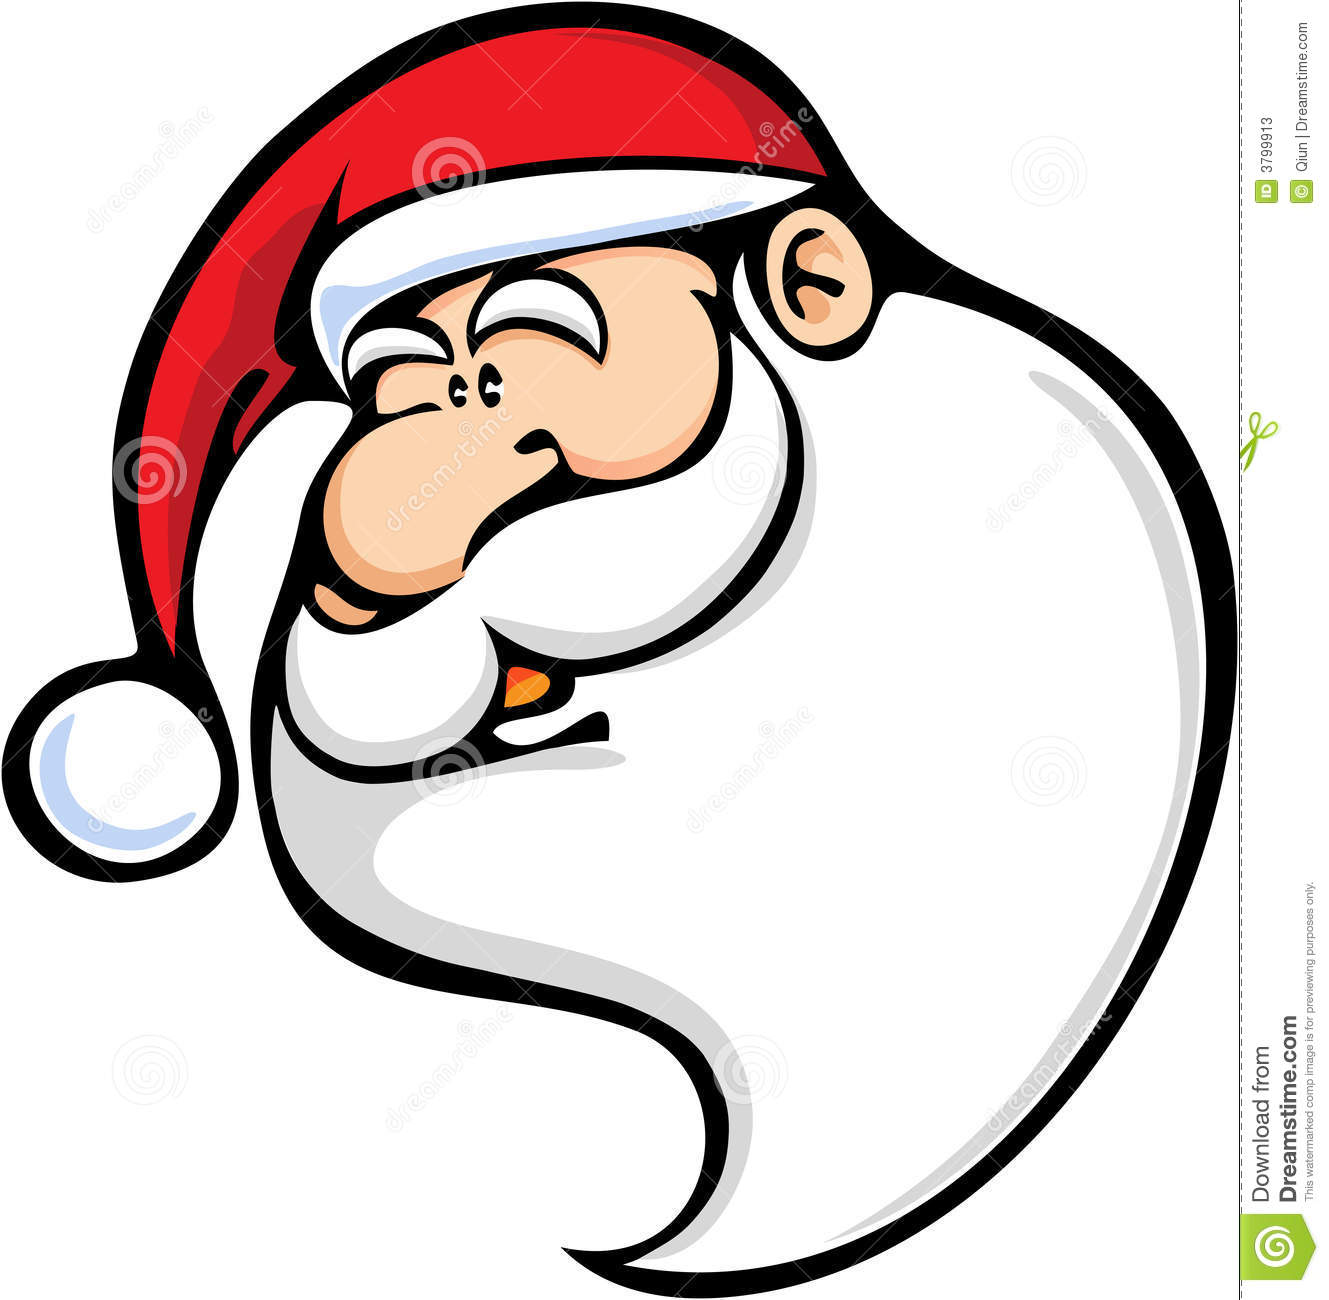 Santa Claus Face Stock Illustration Illustration Of Illustration